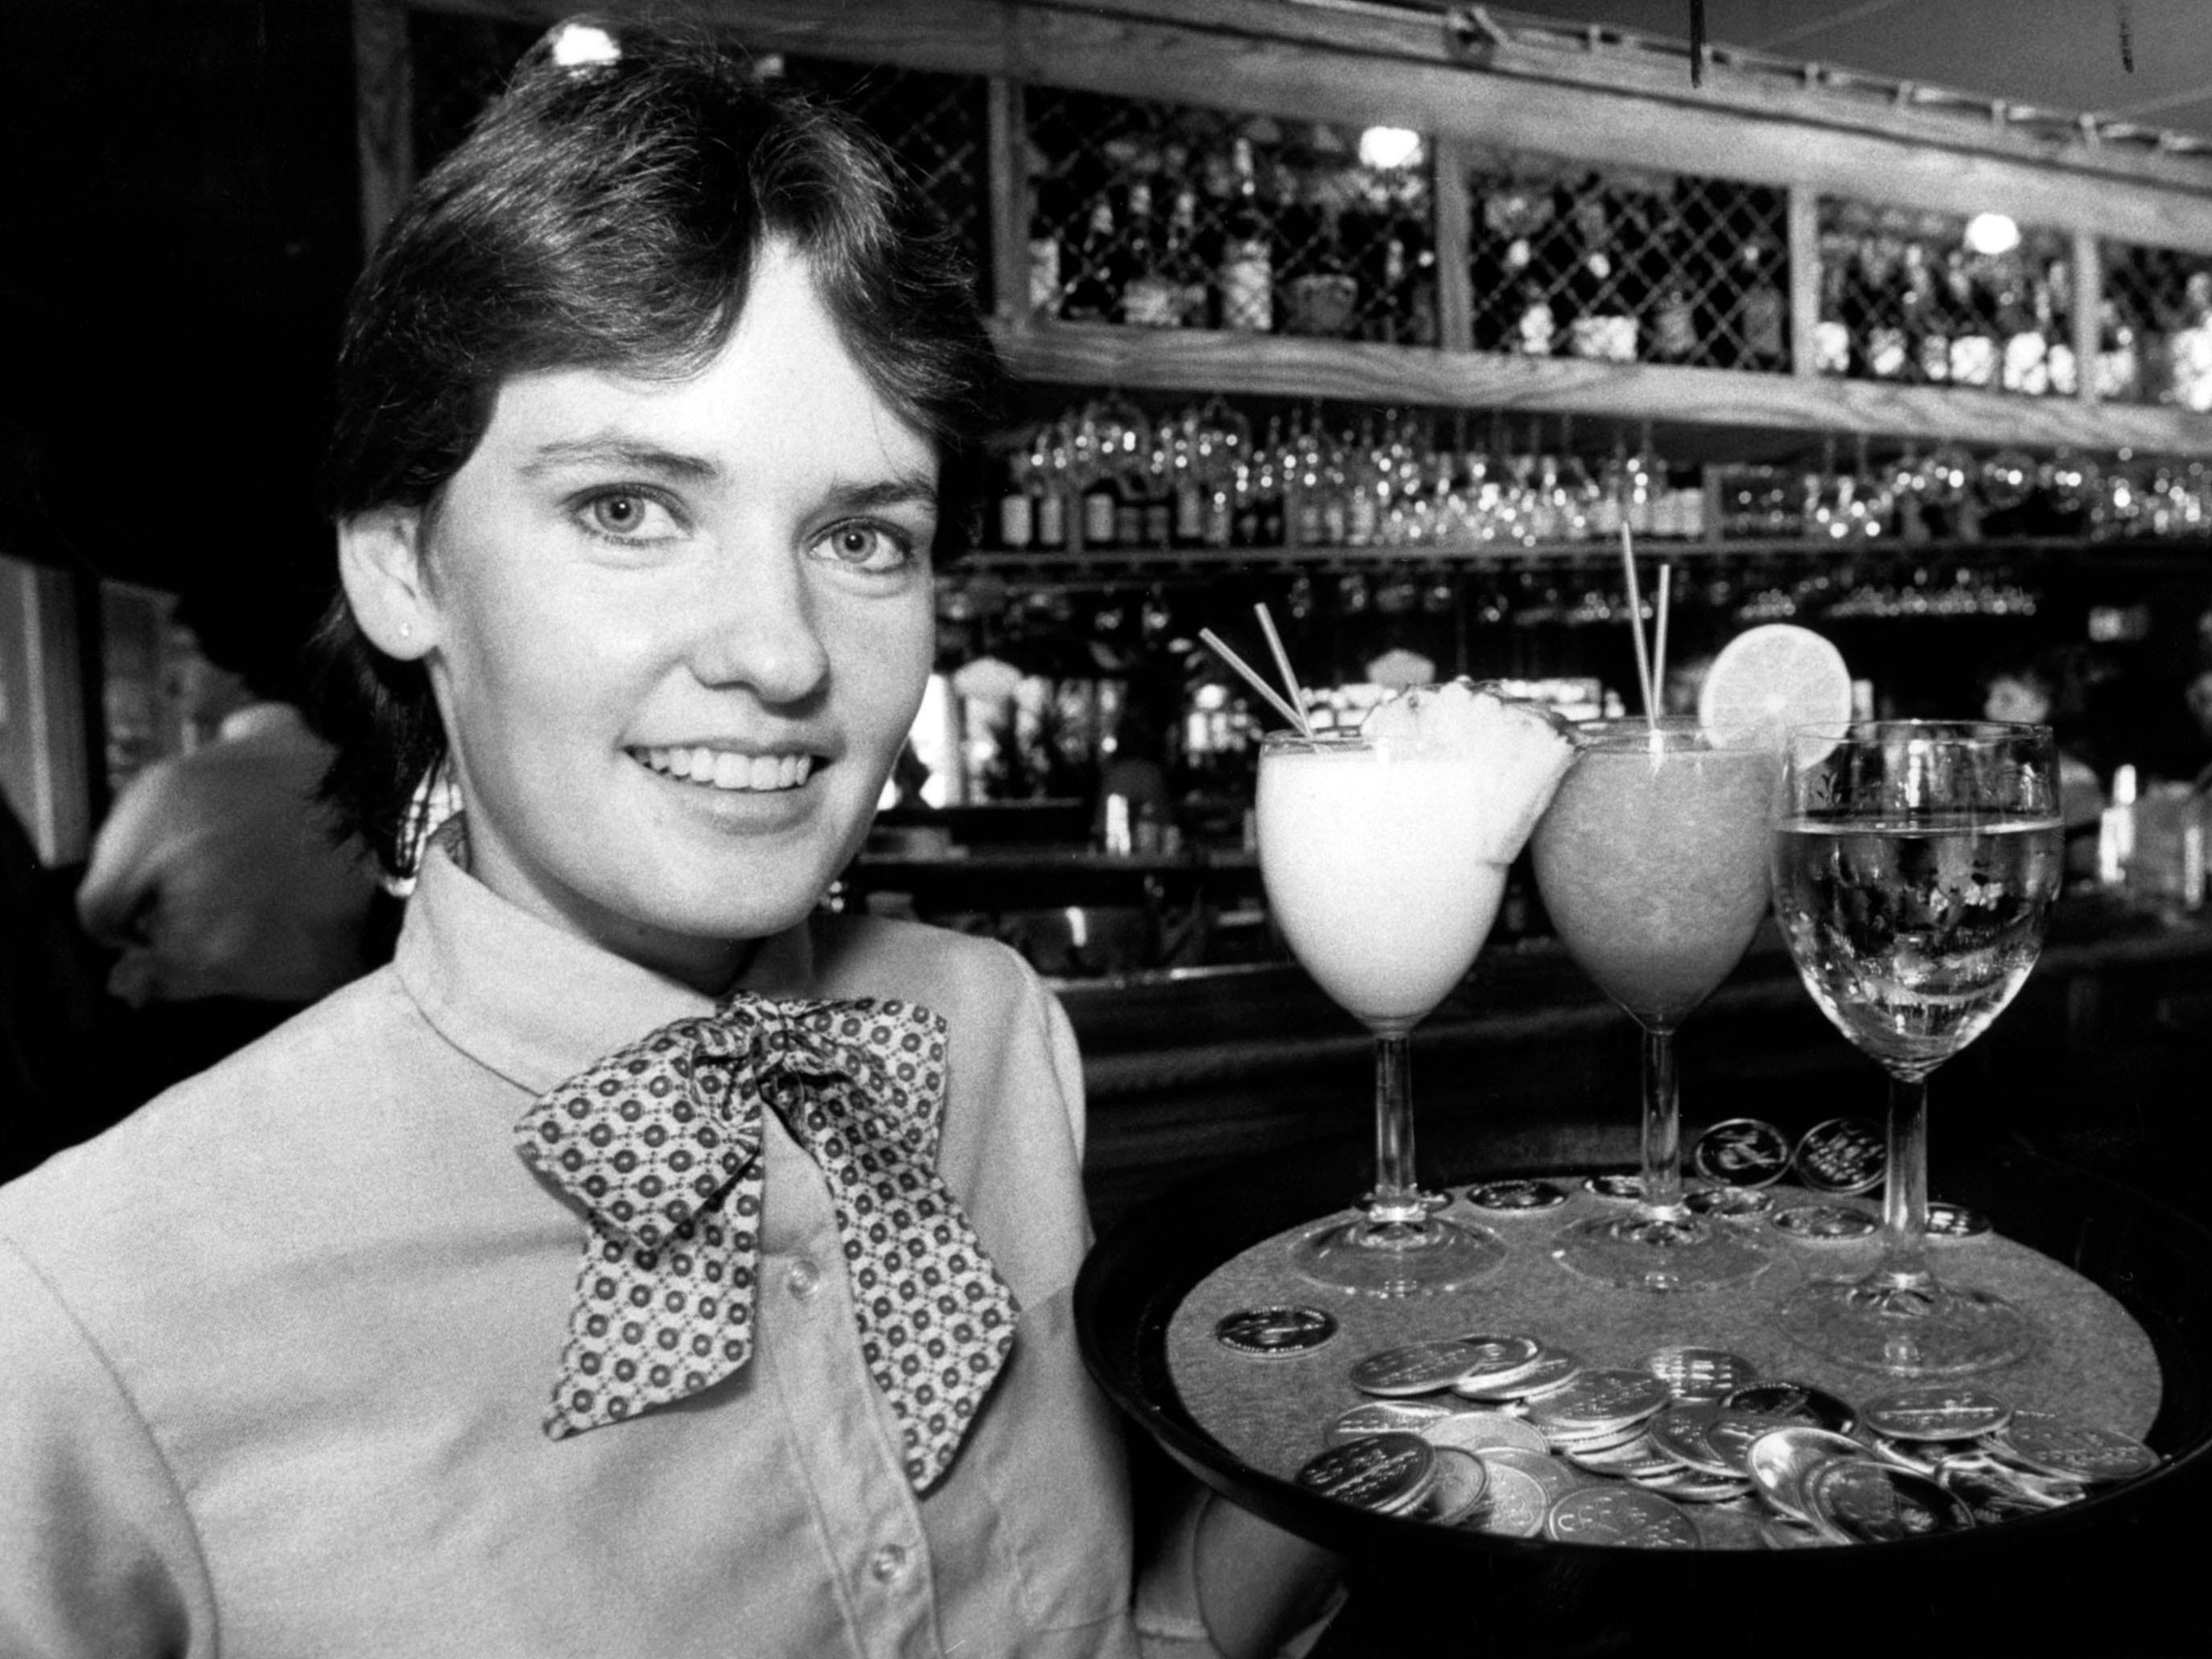 Sharon Cleary at Grady's Good Times Restaurant in 1982.